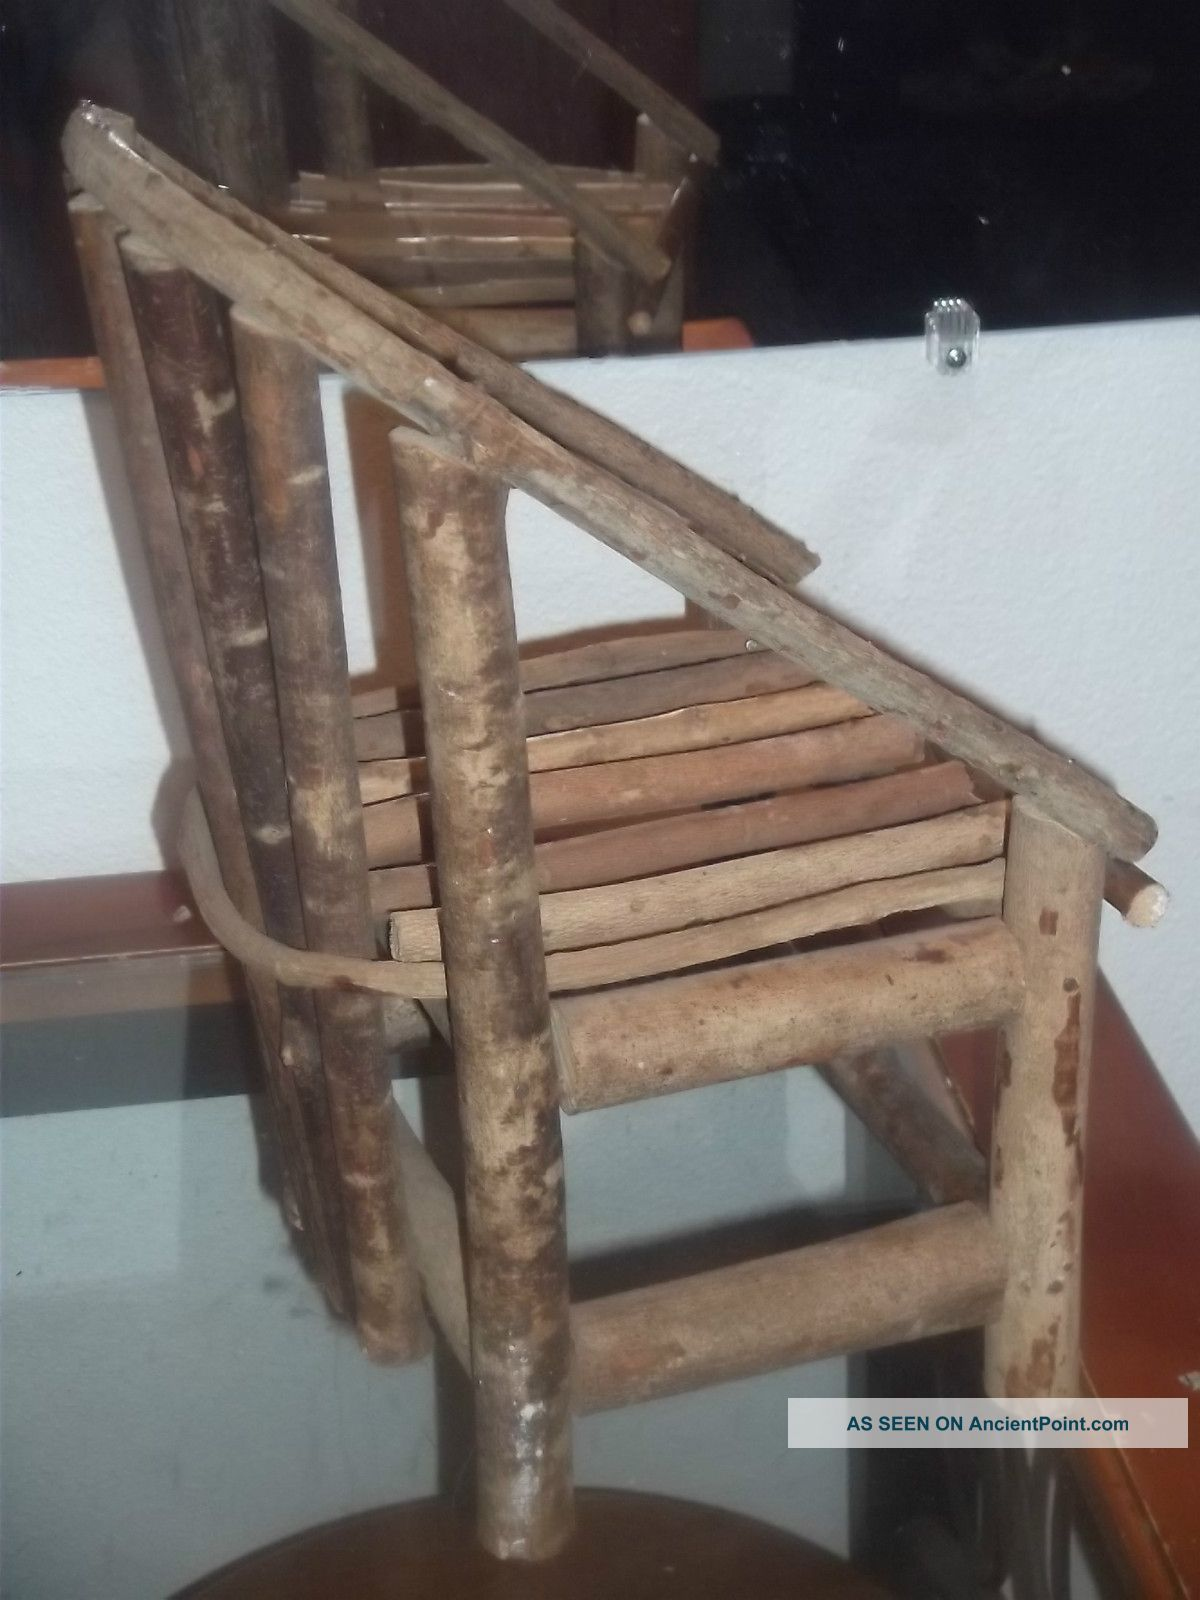 Marvelous photograph of Small Home Made Wood Chair Made From Limbsm For Doll Or Just Looks  with #7E644D color and 1200x1600 pixels